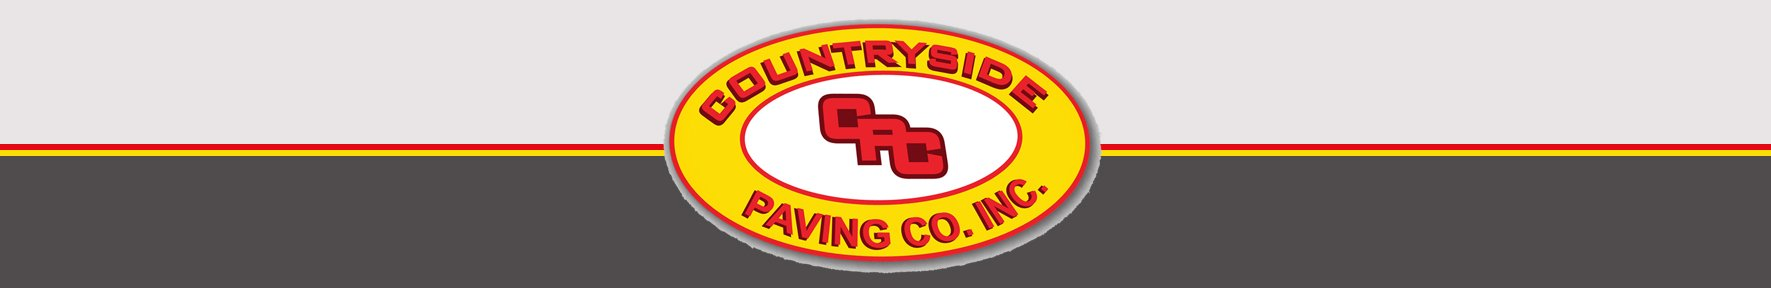 Countryside Paving Co